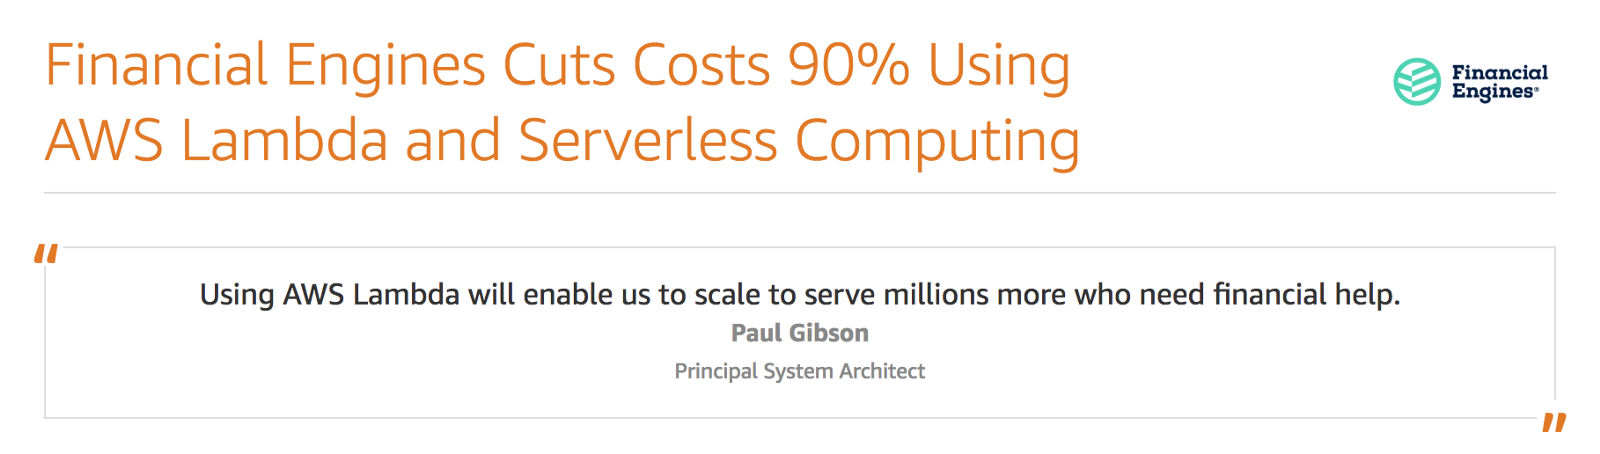 You are thinking about serverless costs all wrong - By Yan Cui